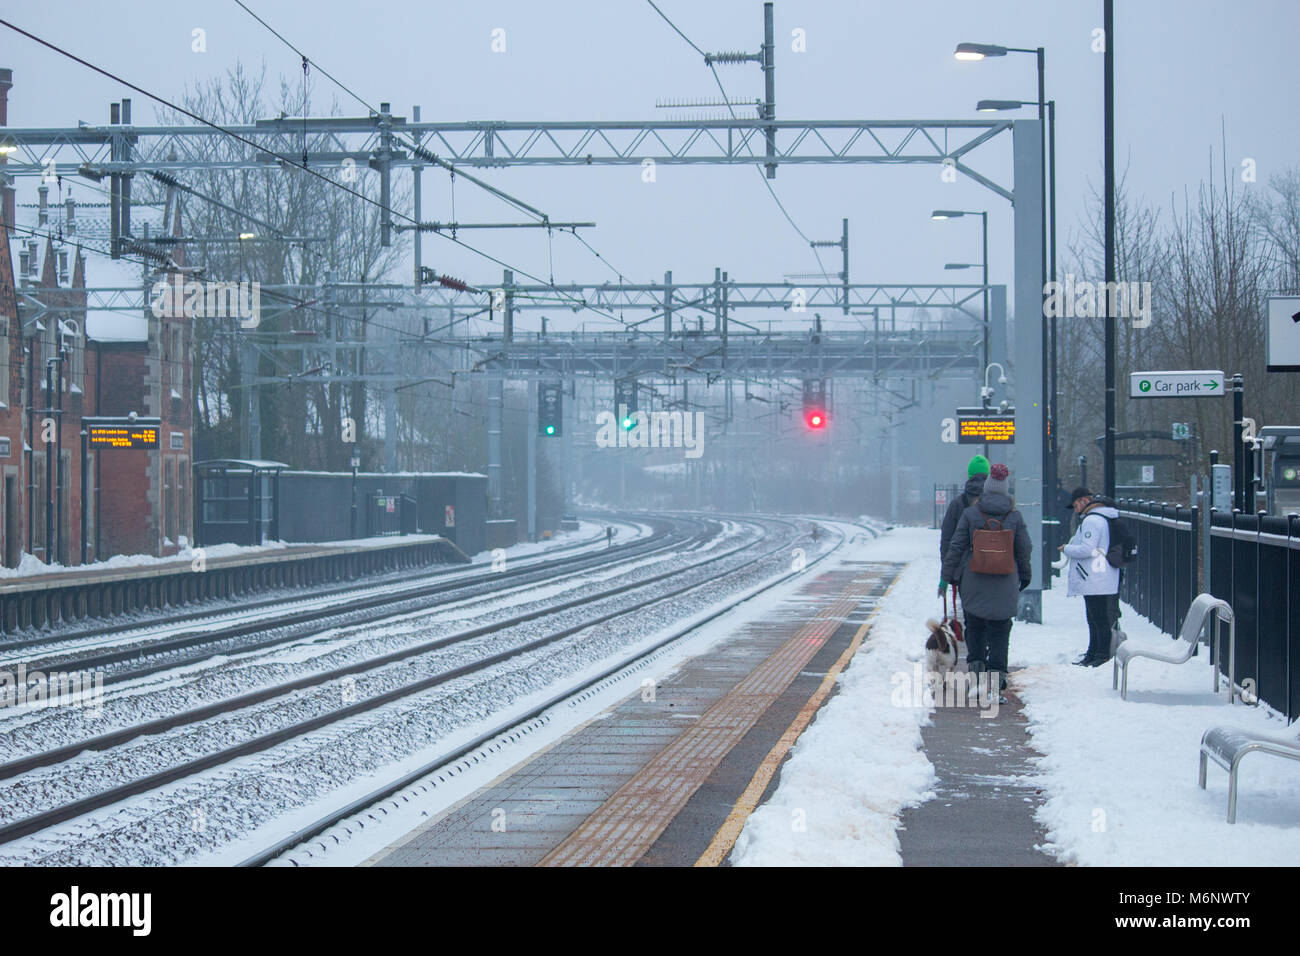 Passengers wait on a platform at an Atherstone train Station covered in snow. The snow has been cleared to make - Stock Image